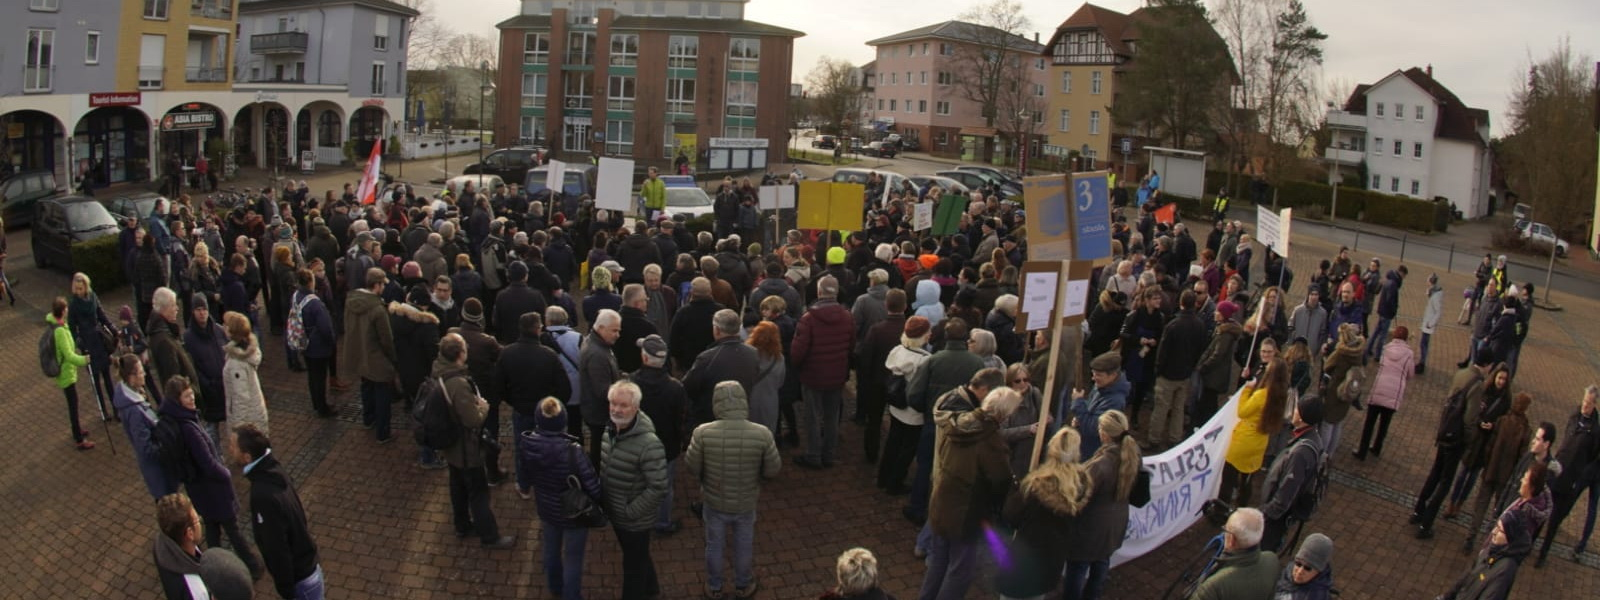 Demonstration in Grünheide